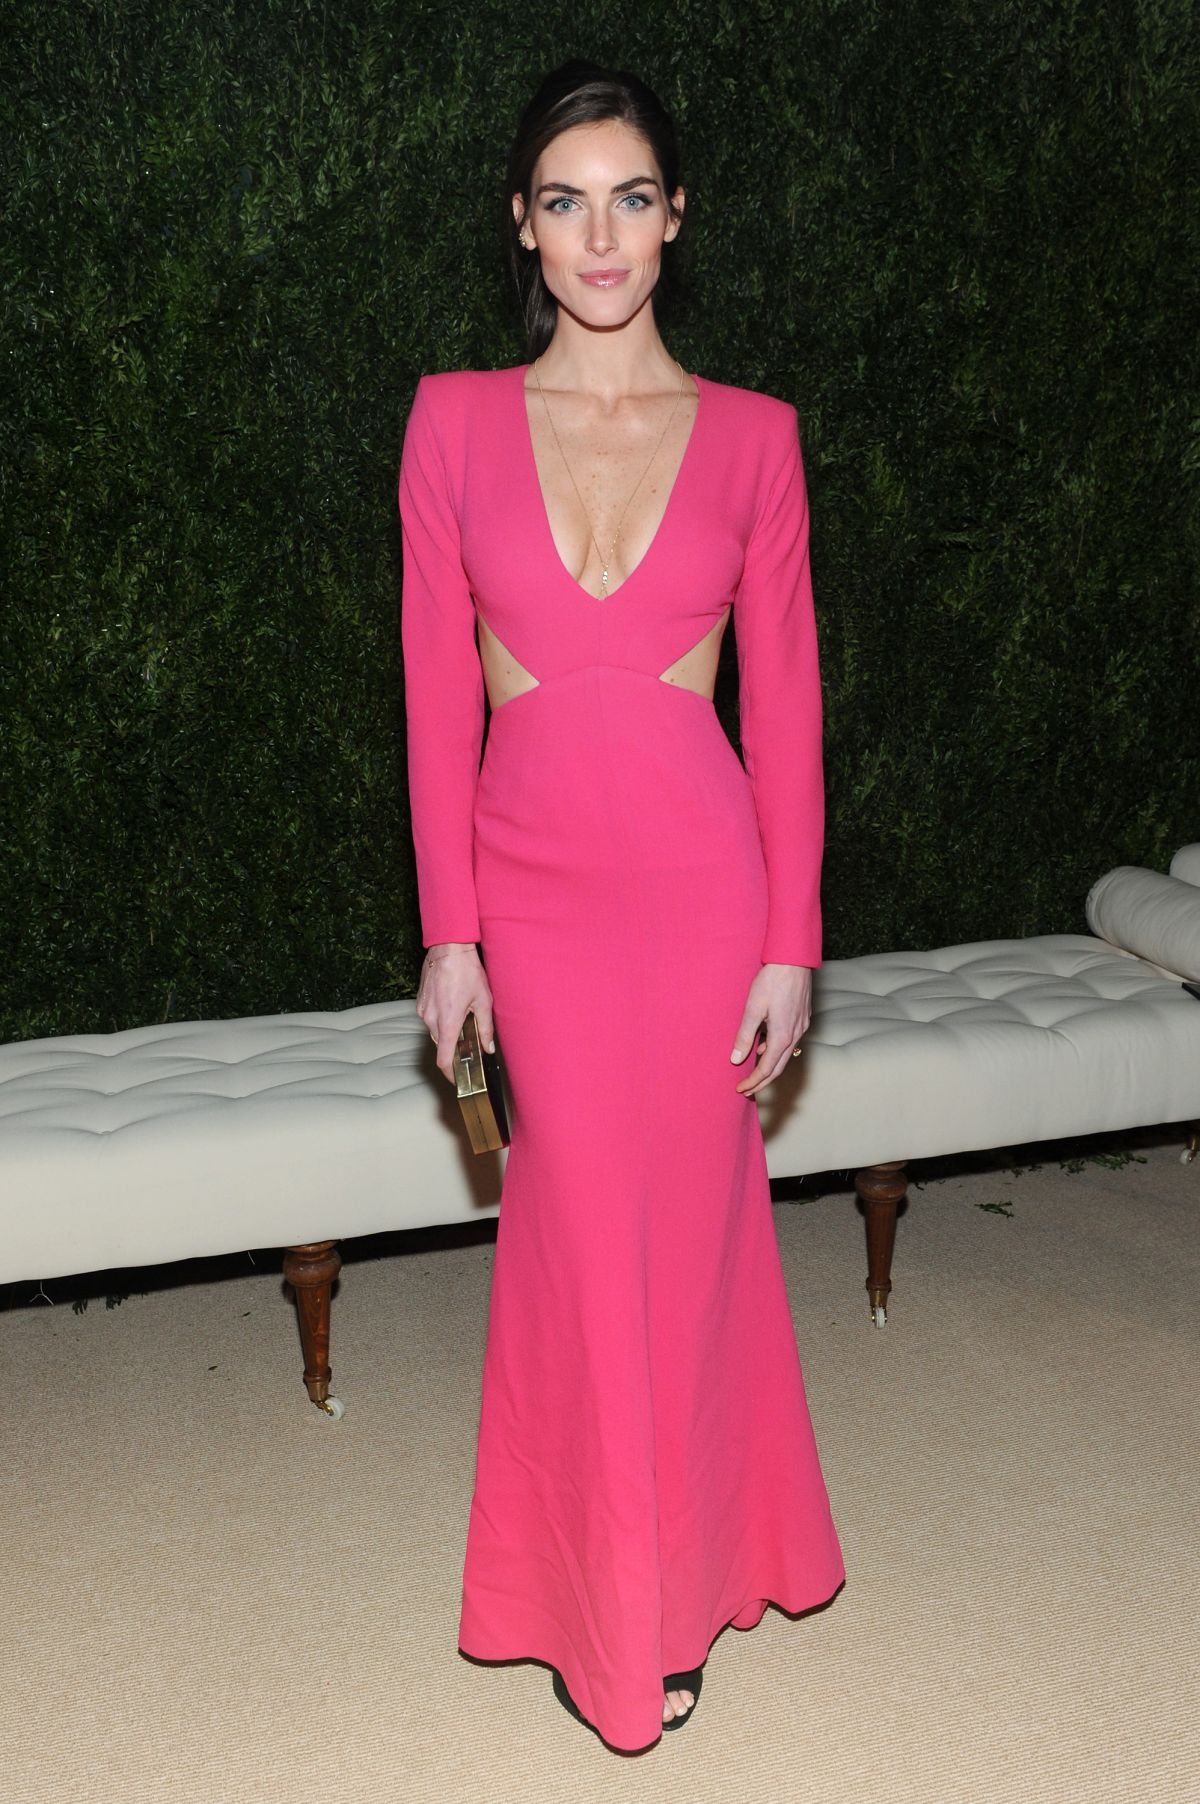 Hilary Rhoda At CFDA And Vogue 2013 Fashion Fund Finalists Celebration In NYC